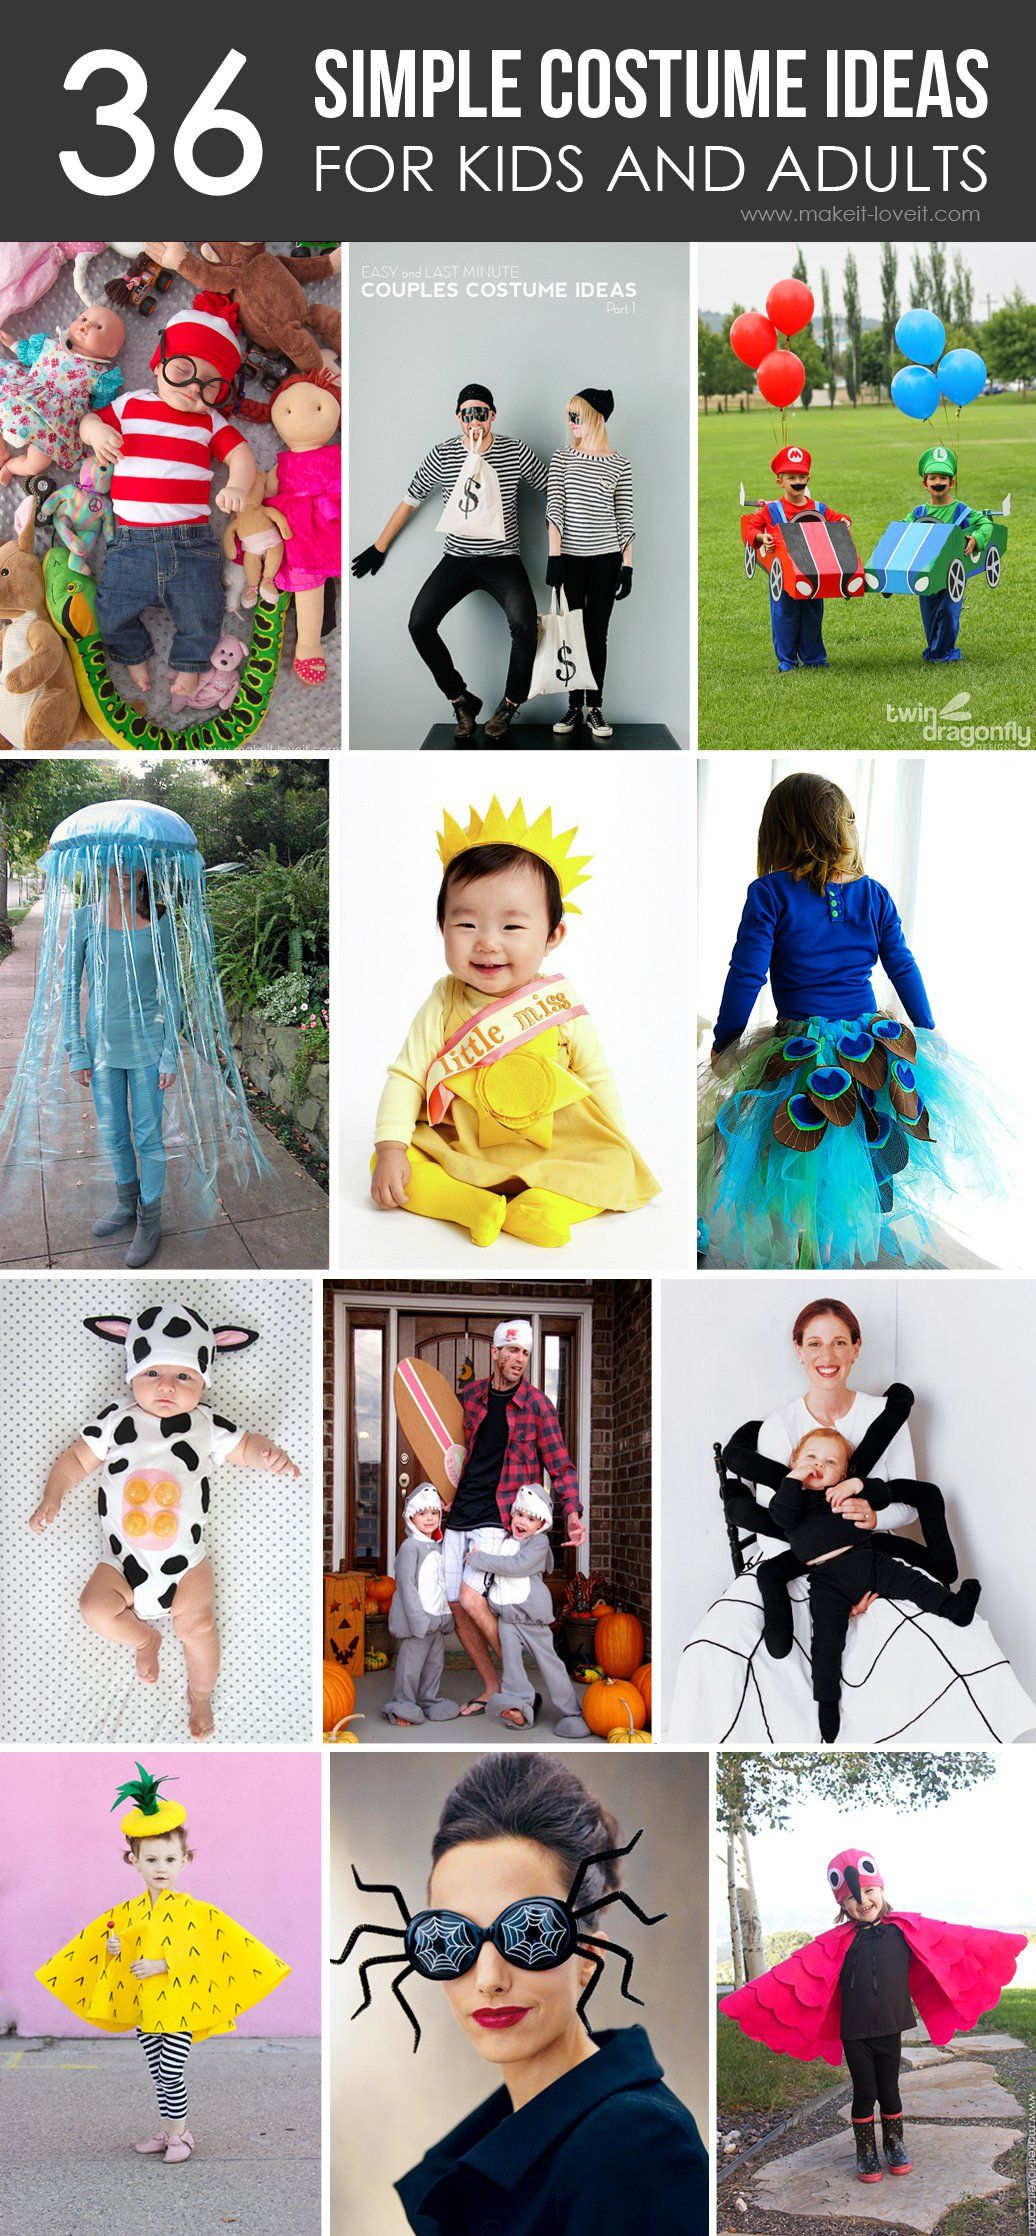 36 simple costume ideas for kids and adultsjust in time for 36 simple costume ideas for kids and adultsjust in time for halloween solutioingenieria Images